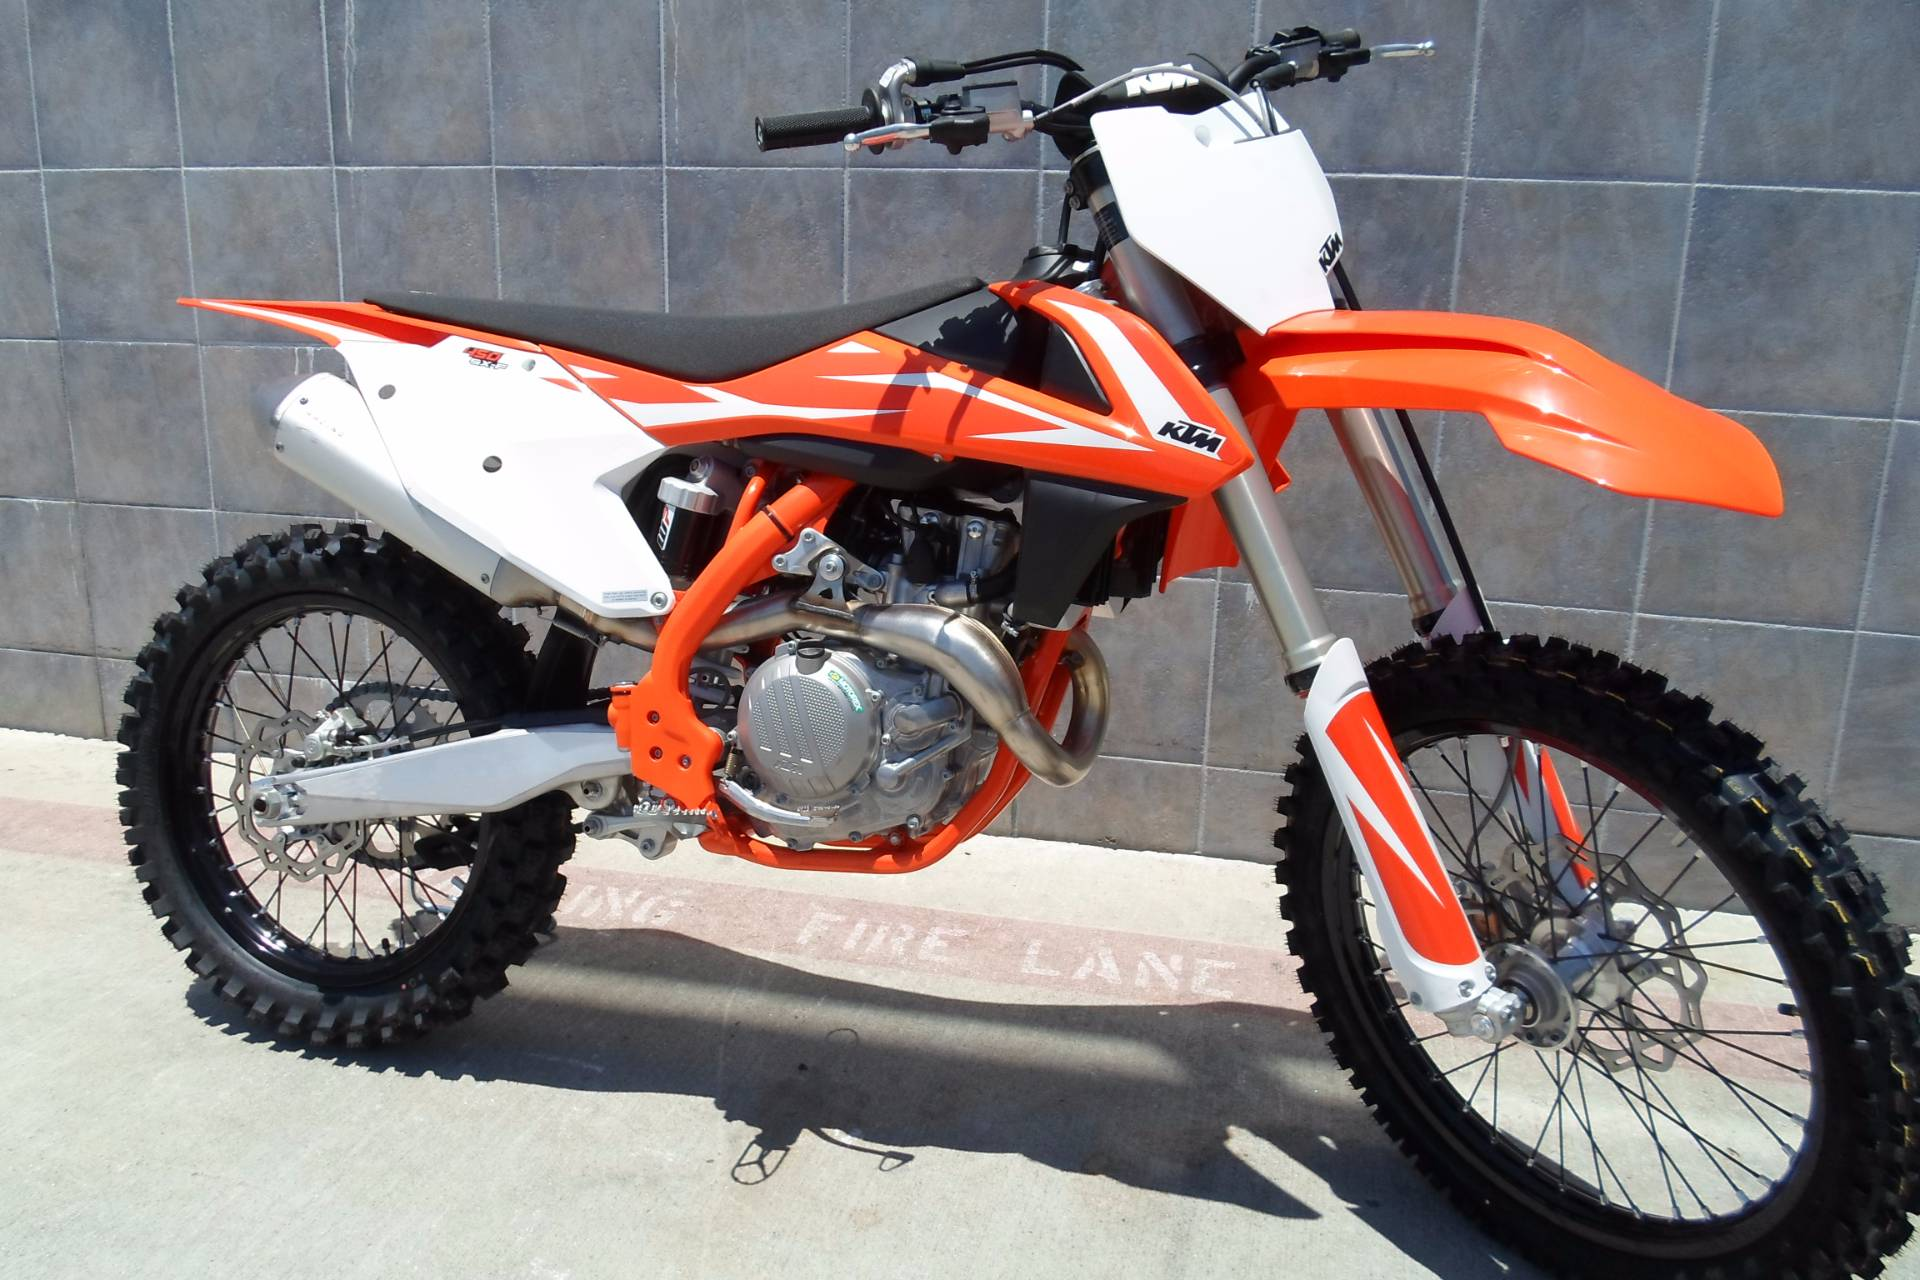 New 2018 KTM 450 SX-F Motorcycles in San Marcos, CA